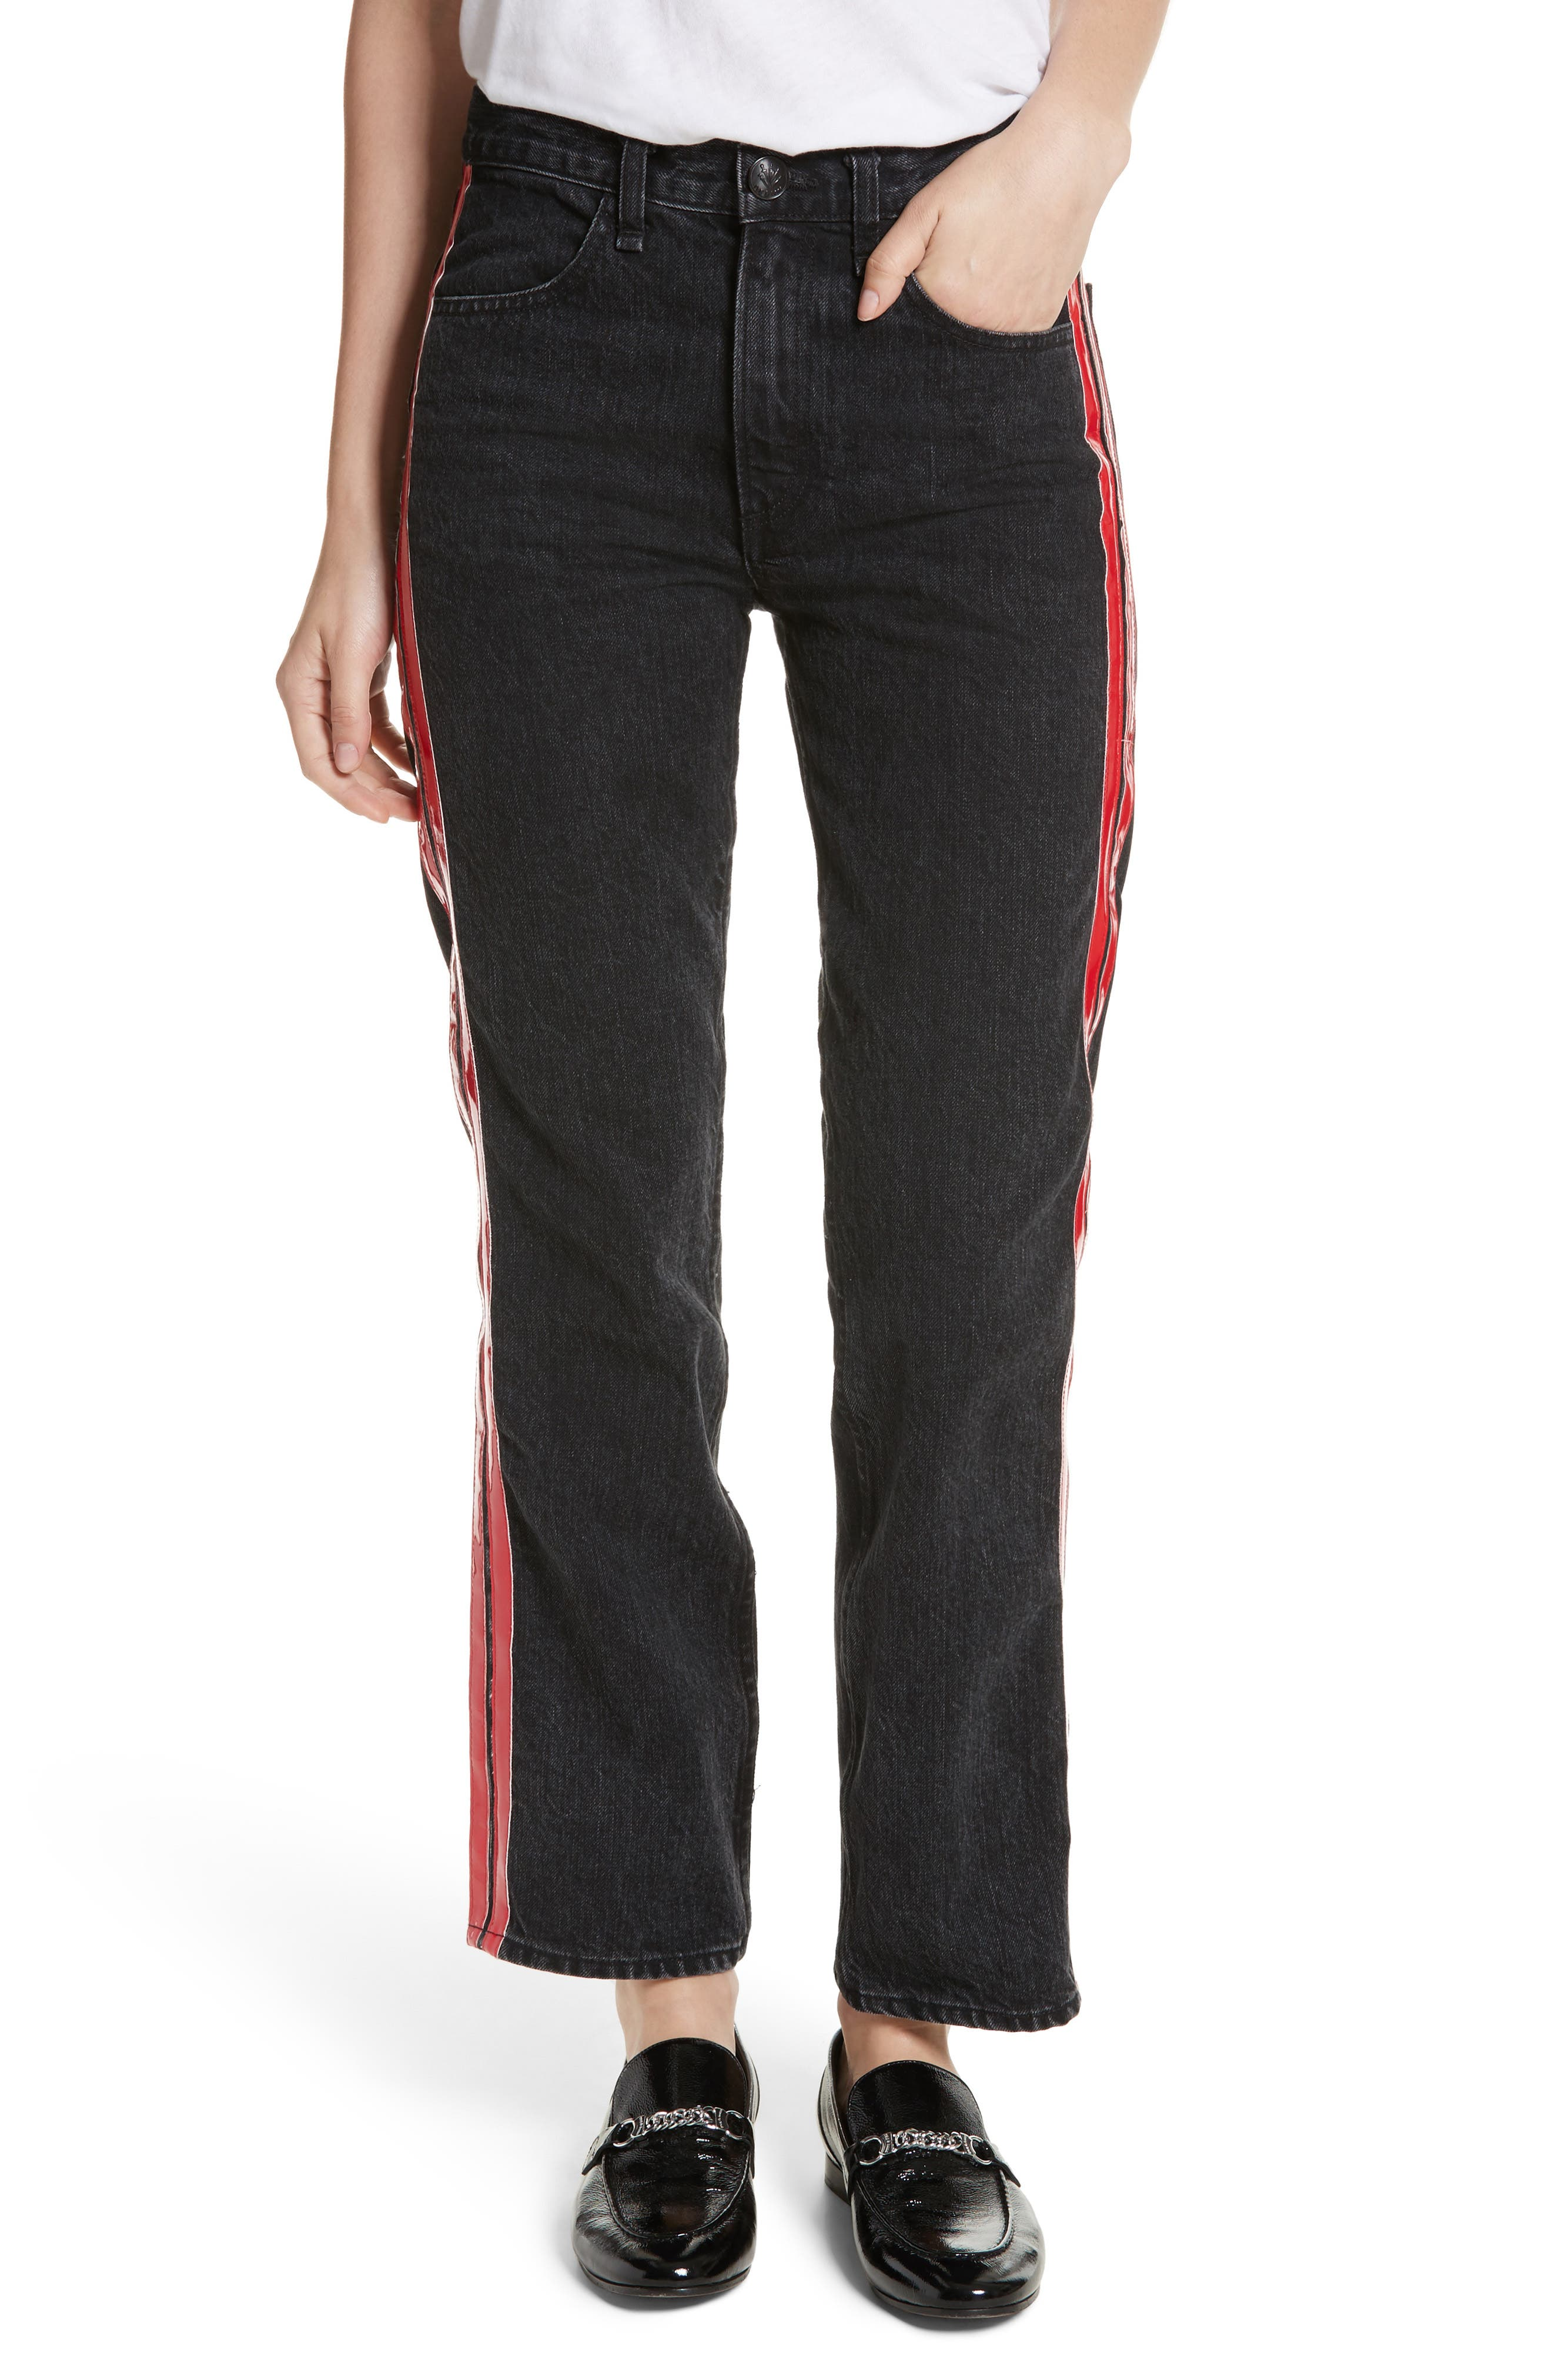 Alternate Image 1 Selected - rag & bone/JEAN High Waist Straight Leg Jeans (Washed Black)